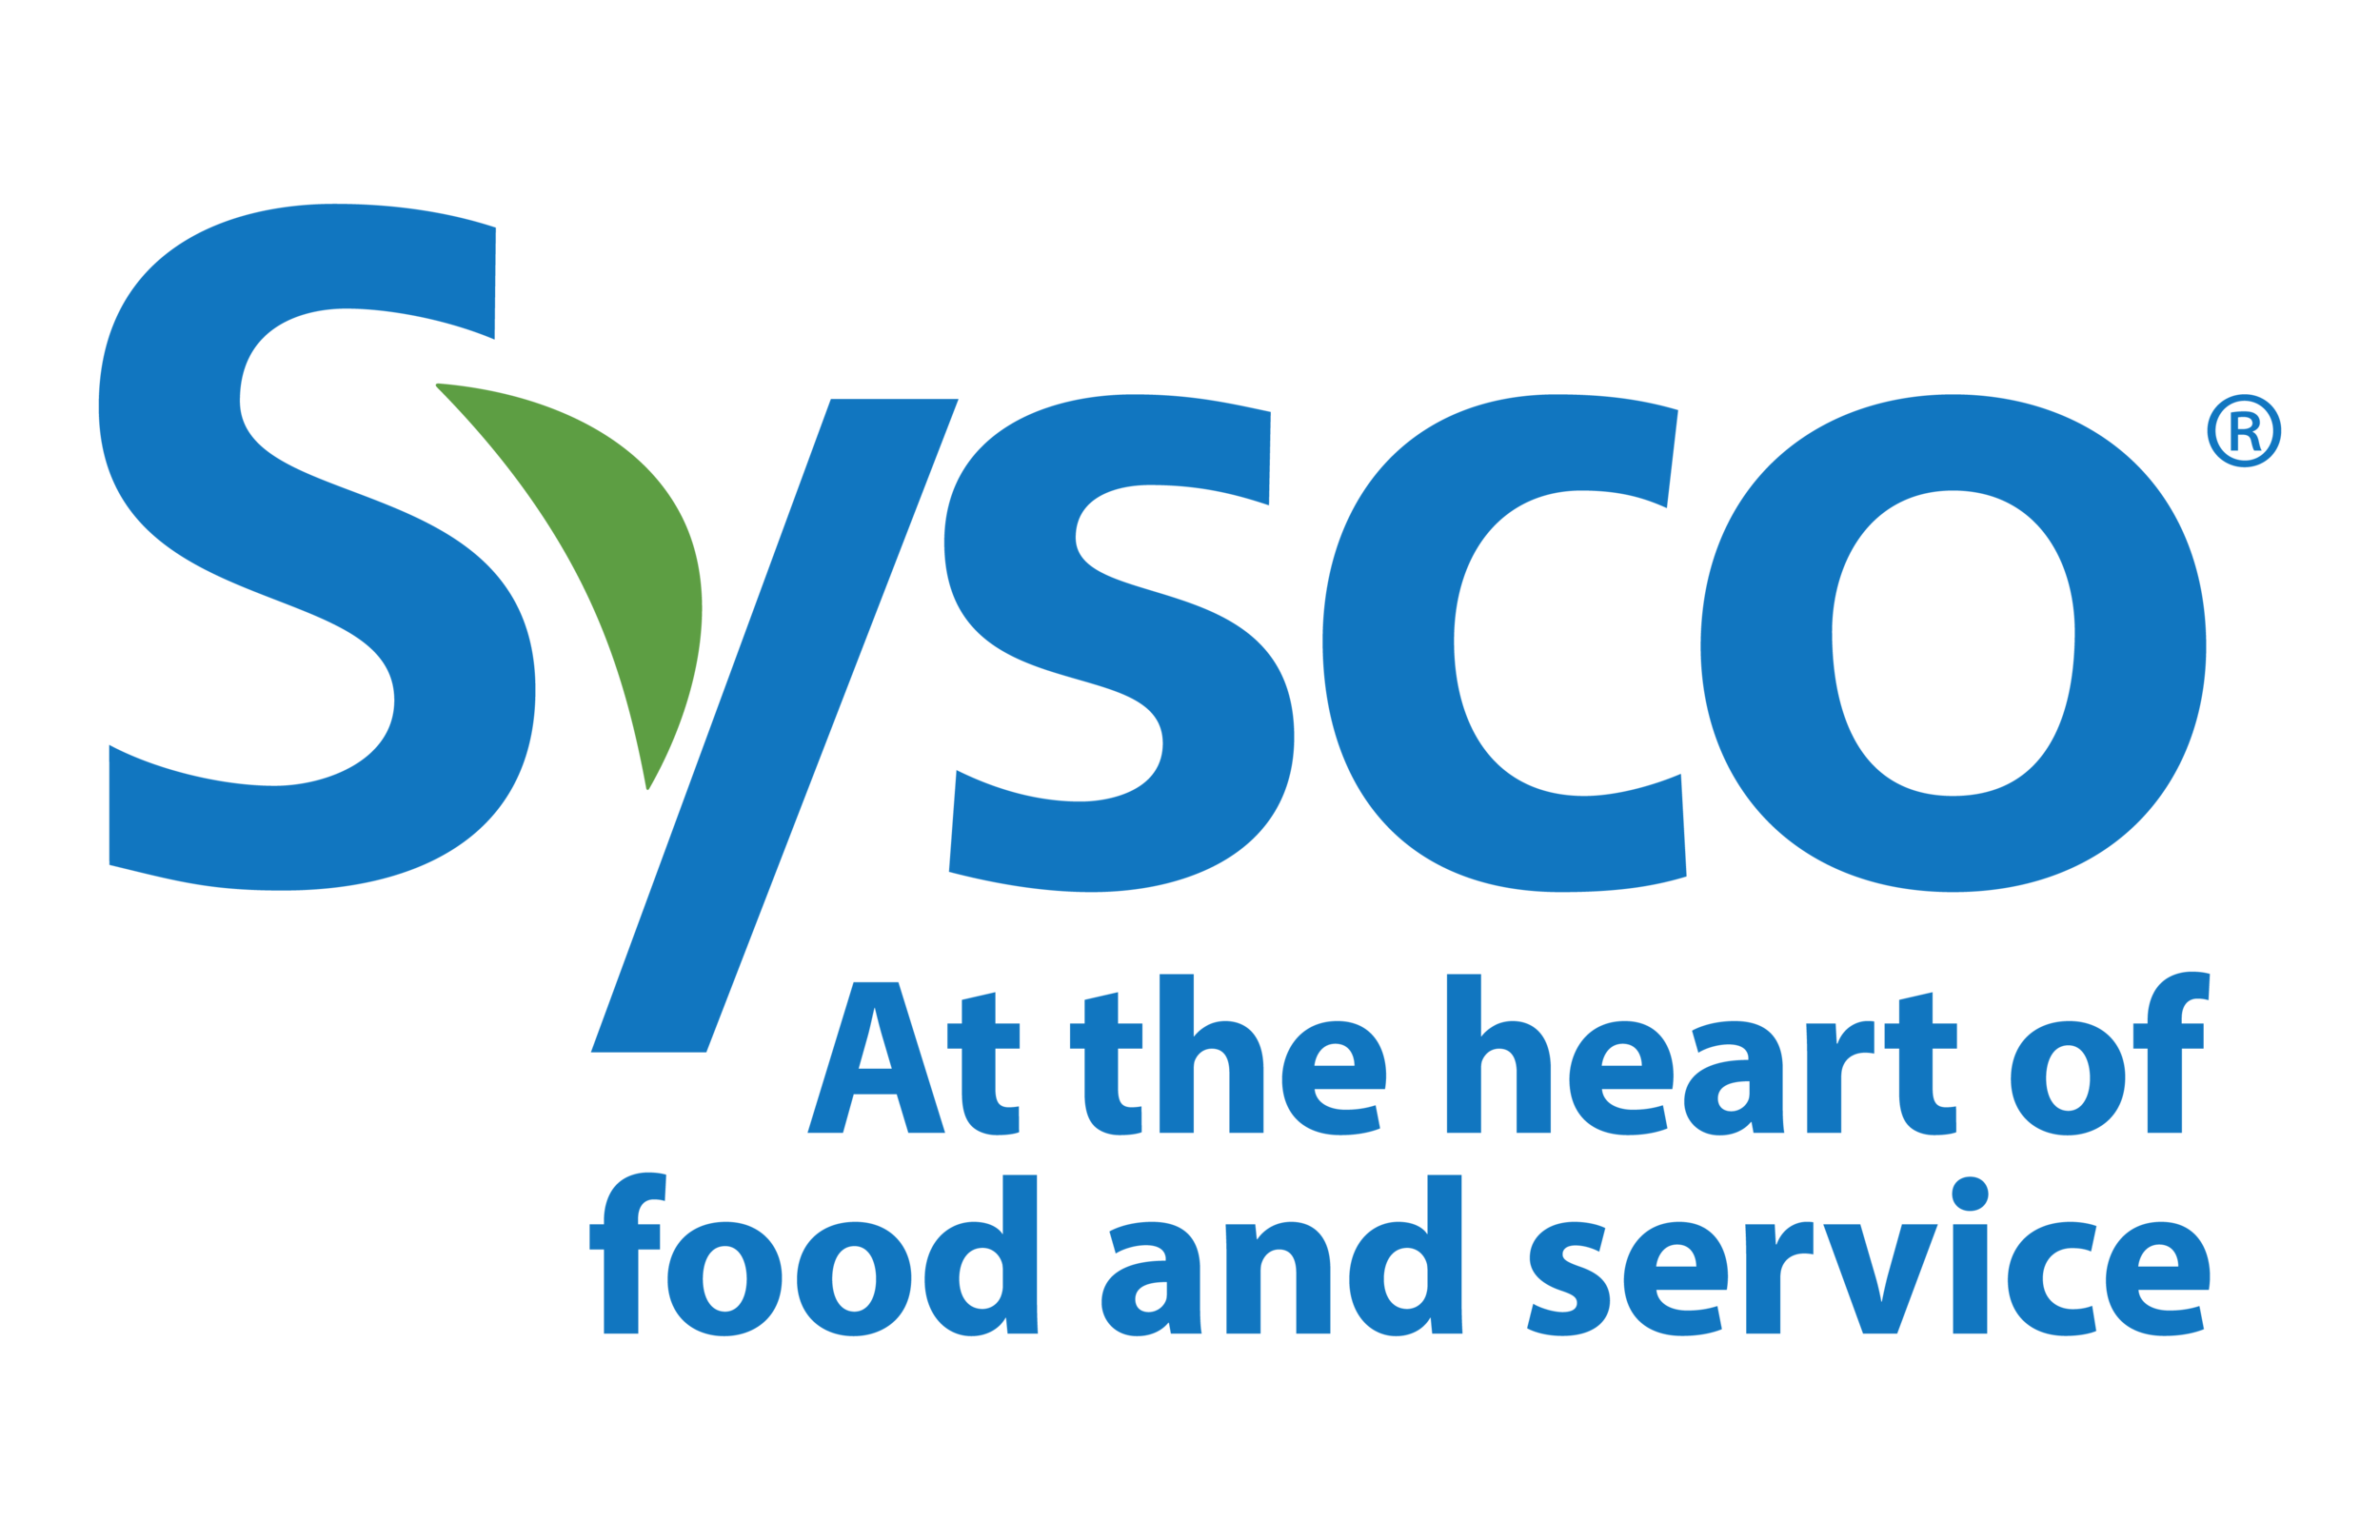 Sysco-Logo-At-the-heart-Stacked-full color-01.png